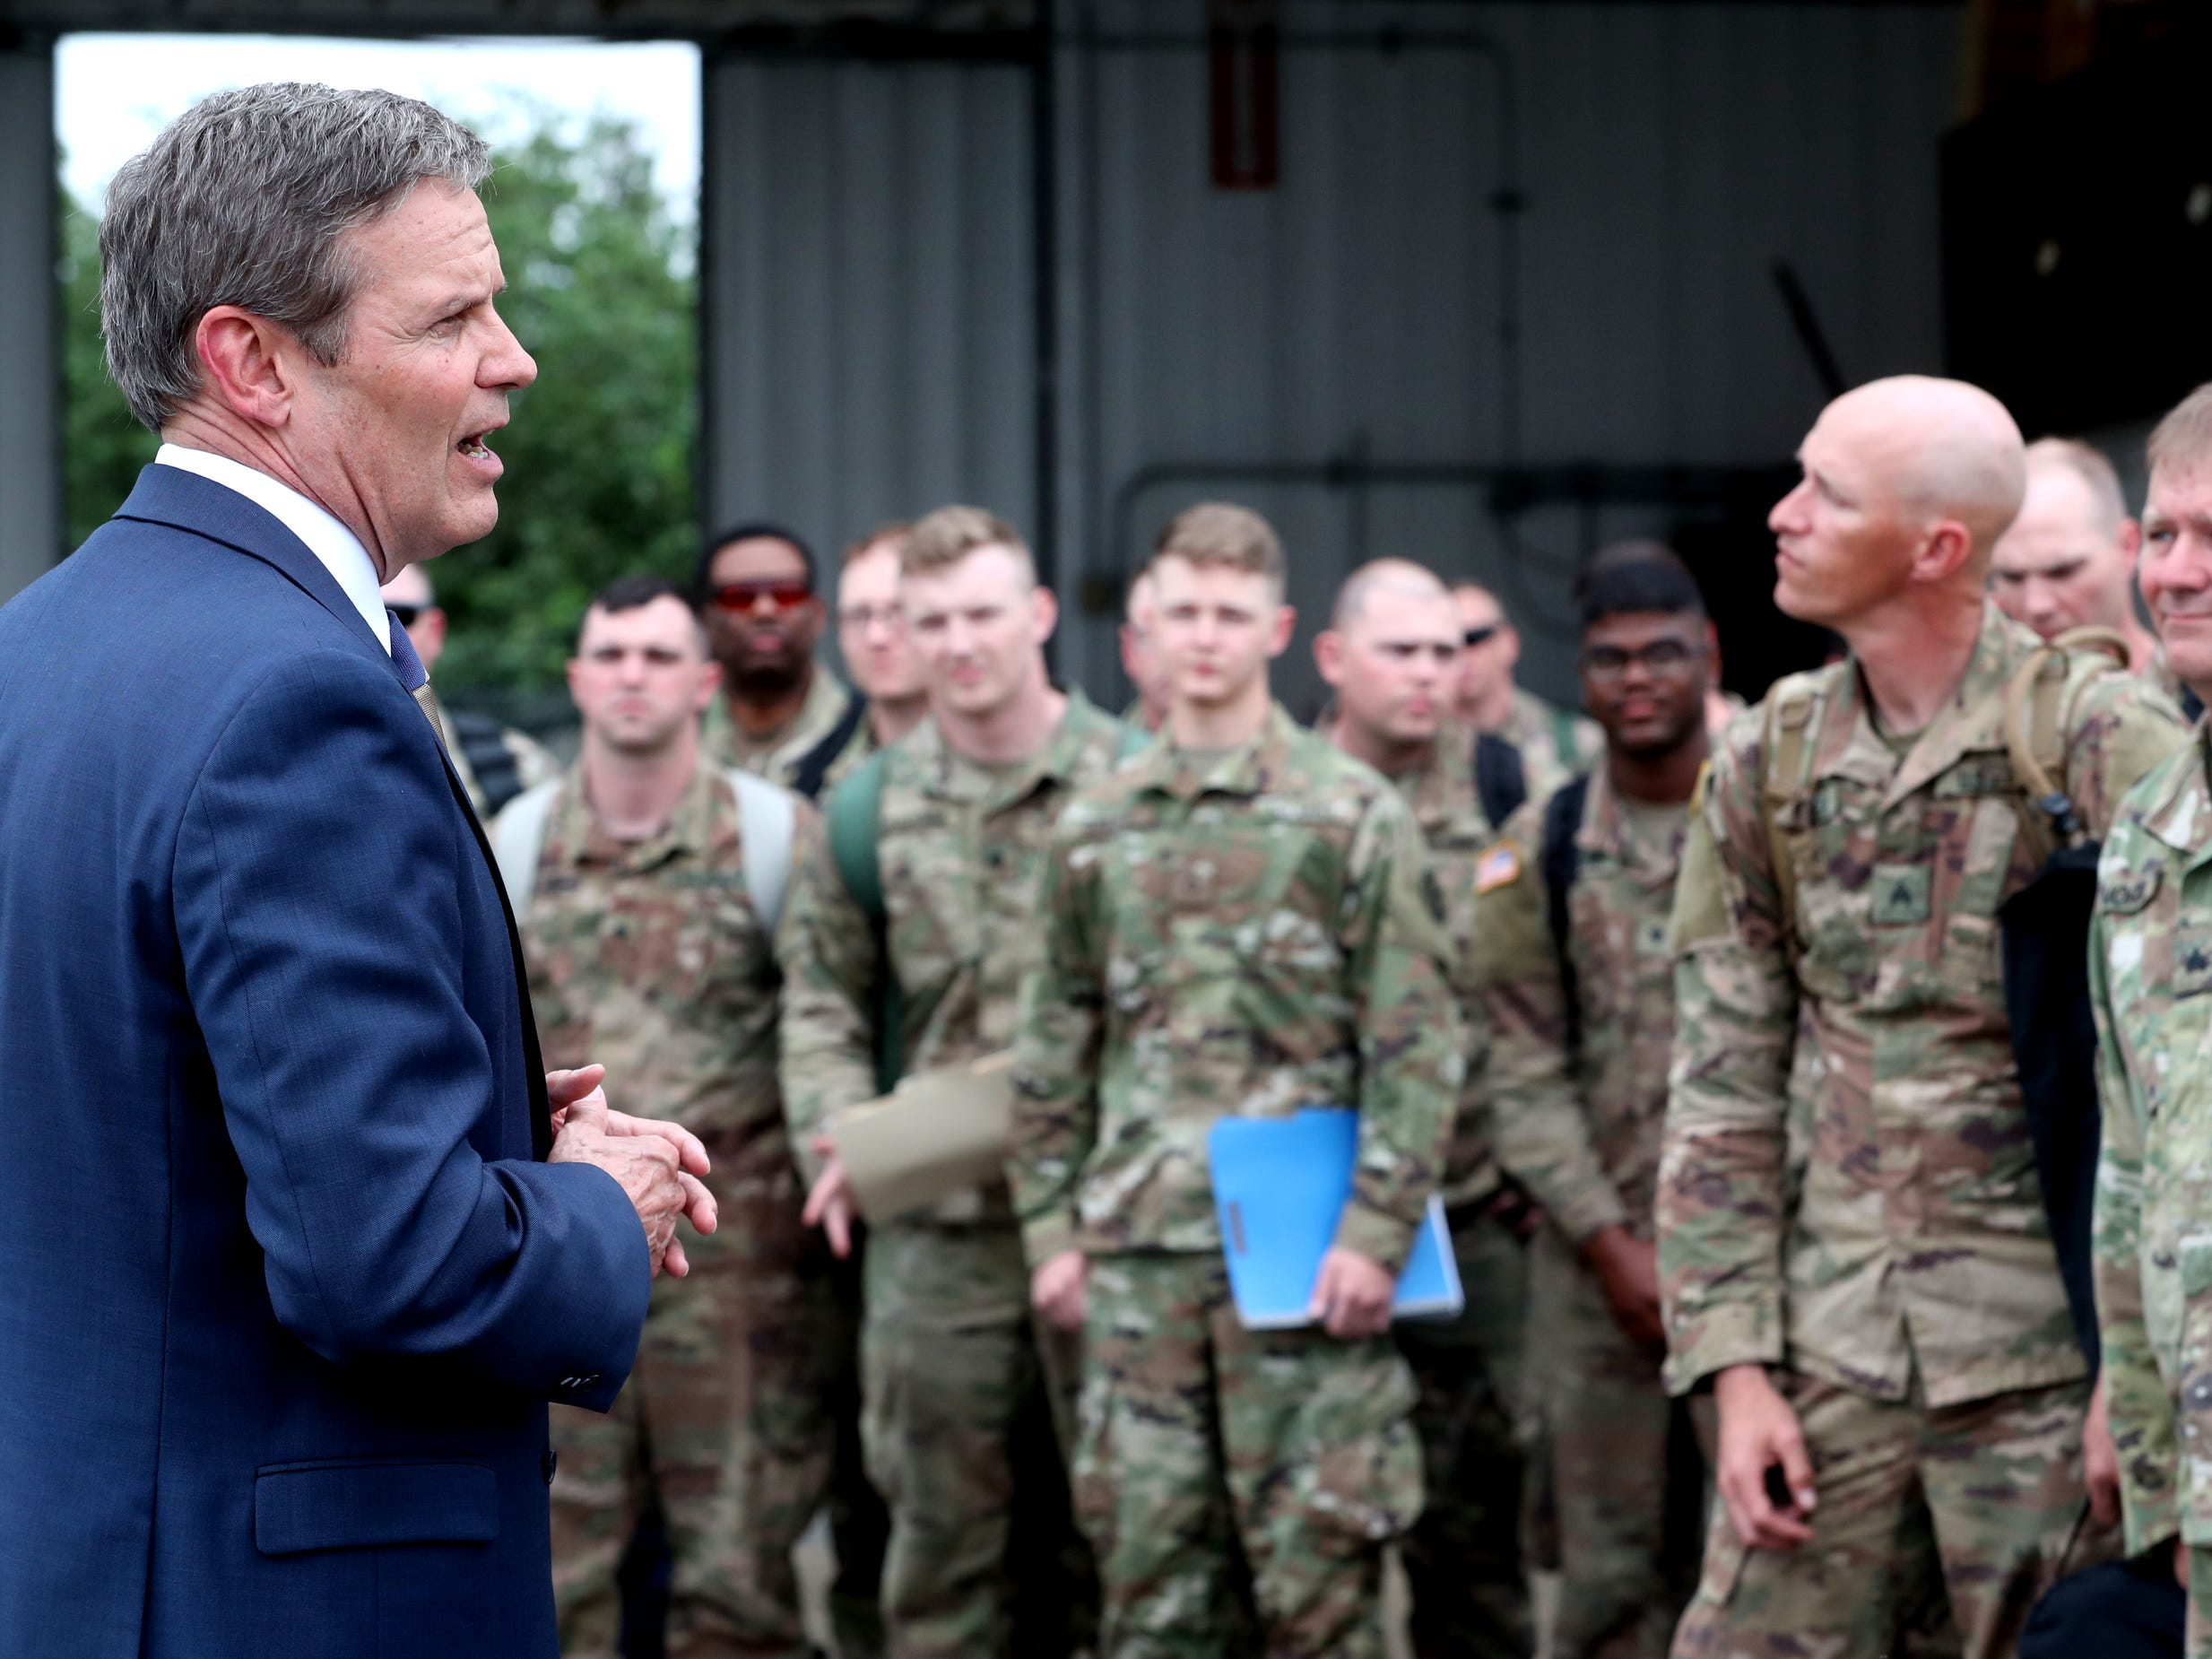 Tennessee Governor Bill Lee welcomed home the returning troops with the 278th ACR from a 9 month overseas deployment  to the Volunteer Training Site in Smyrna on Thursday, May 9, 2019.